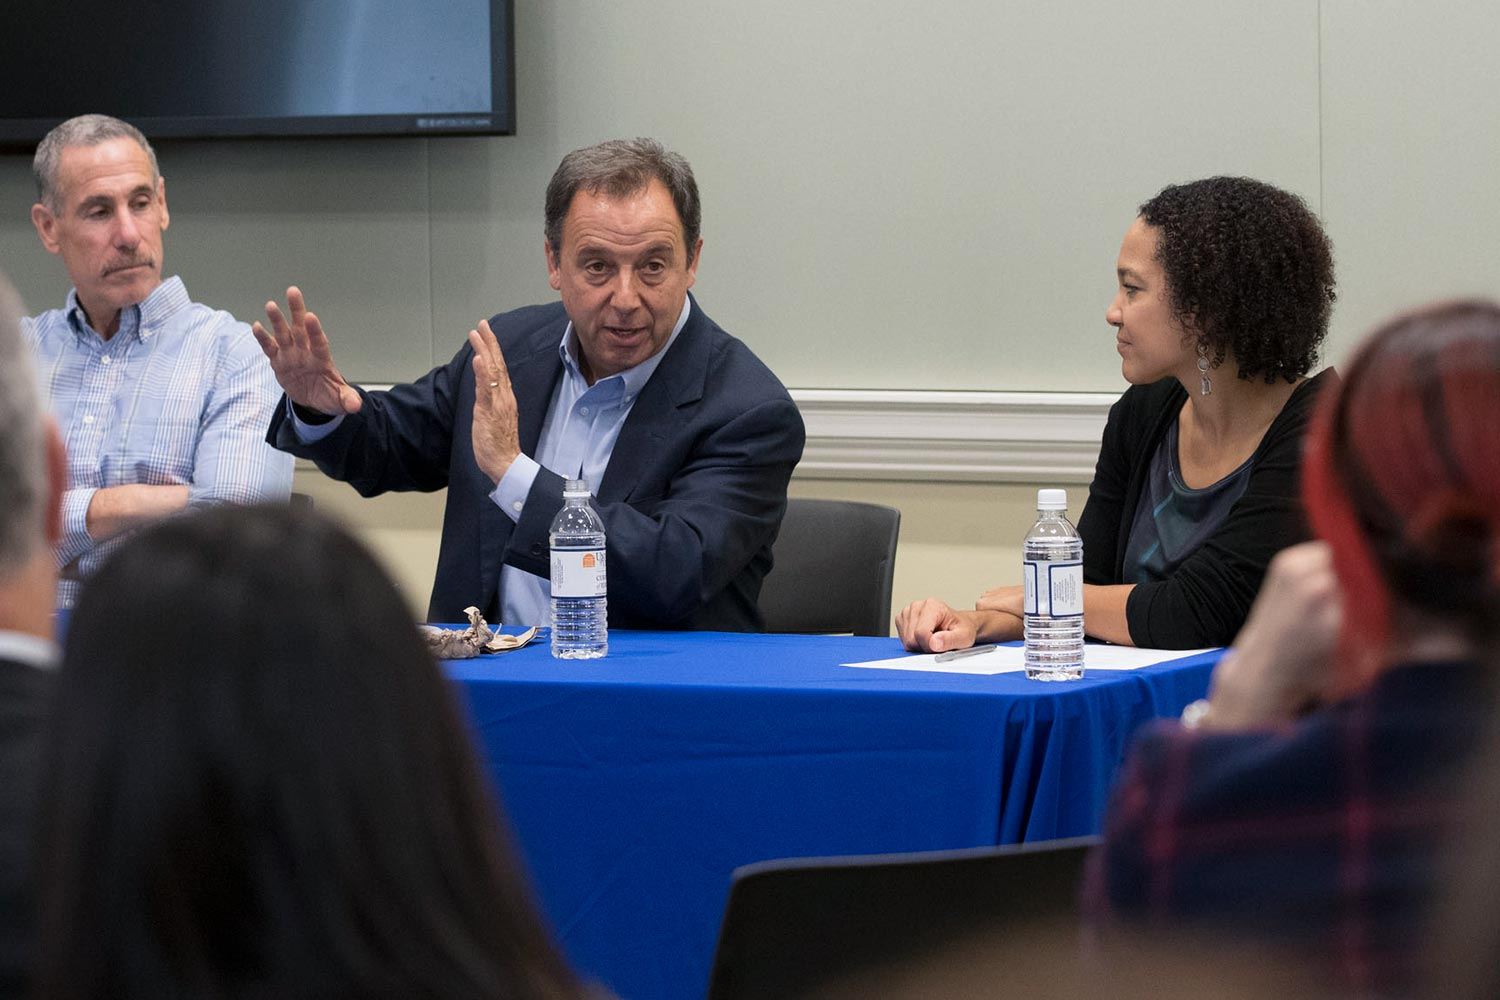 Journalist and UVA alumnus Ronald Suskind, the father of son who is on the autism spectrum, currently chairs the UVA-Curry Autism Advancement Council.